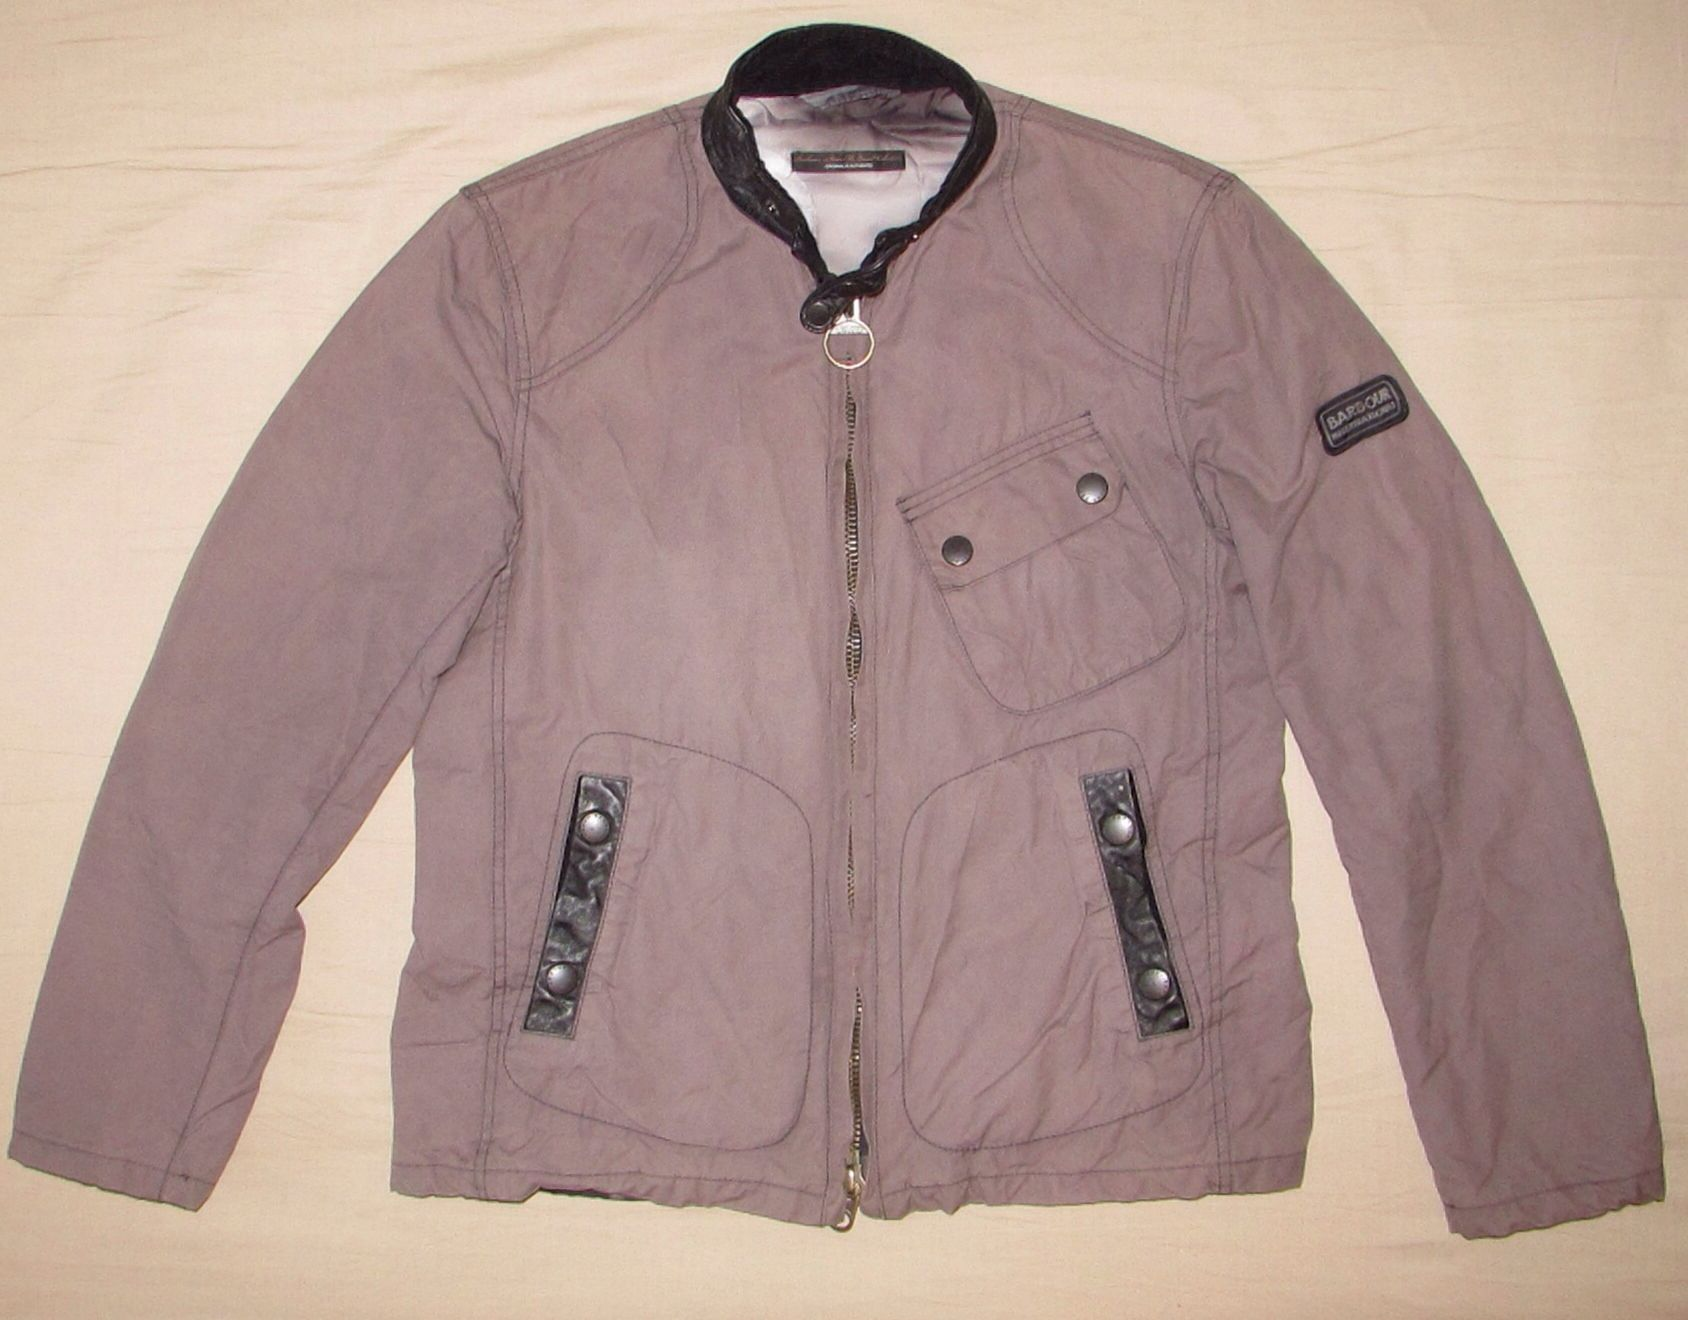 51. Barbour International Steve McQueen Greenham Jacket